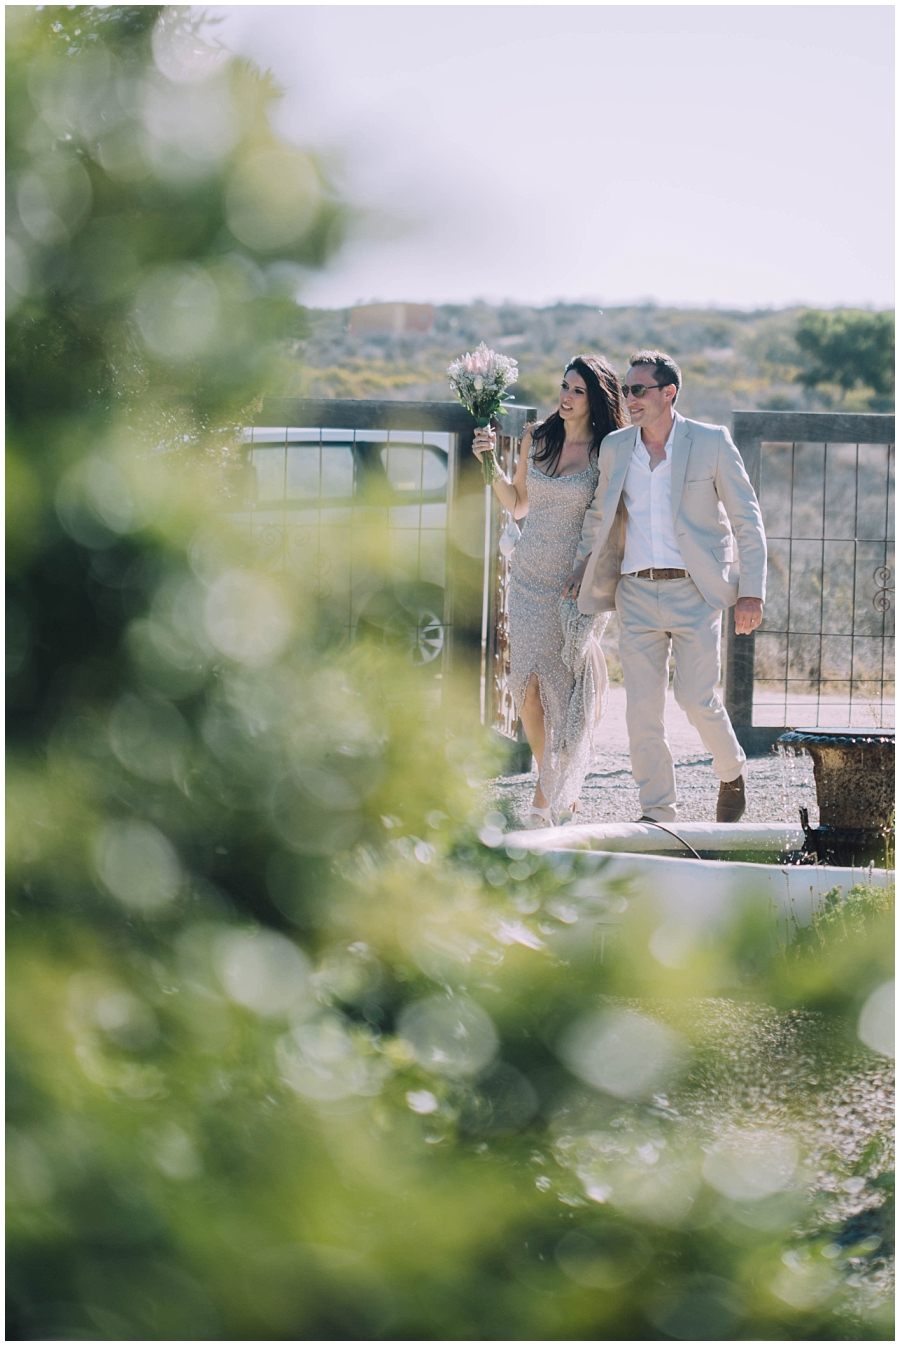 Ronel Kruger Cape Town Wedding and Lifestyle Photographer_0376.jpg